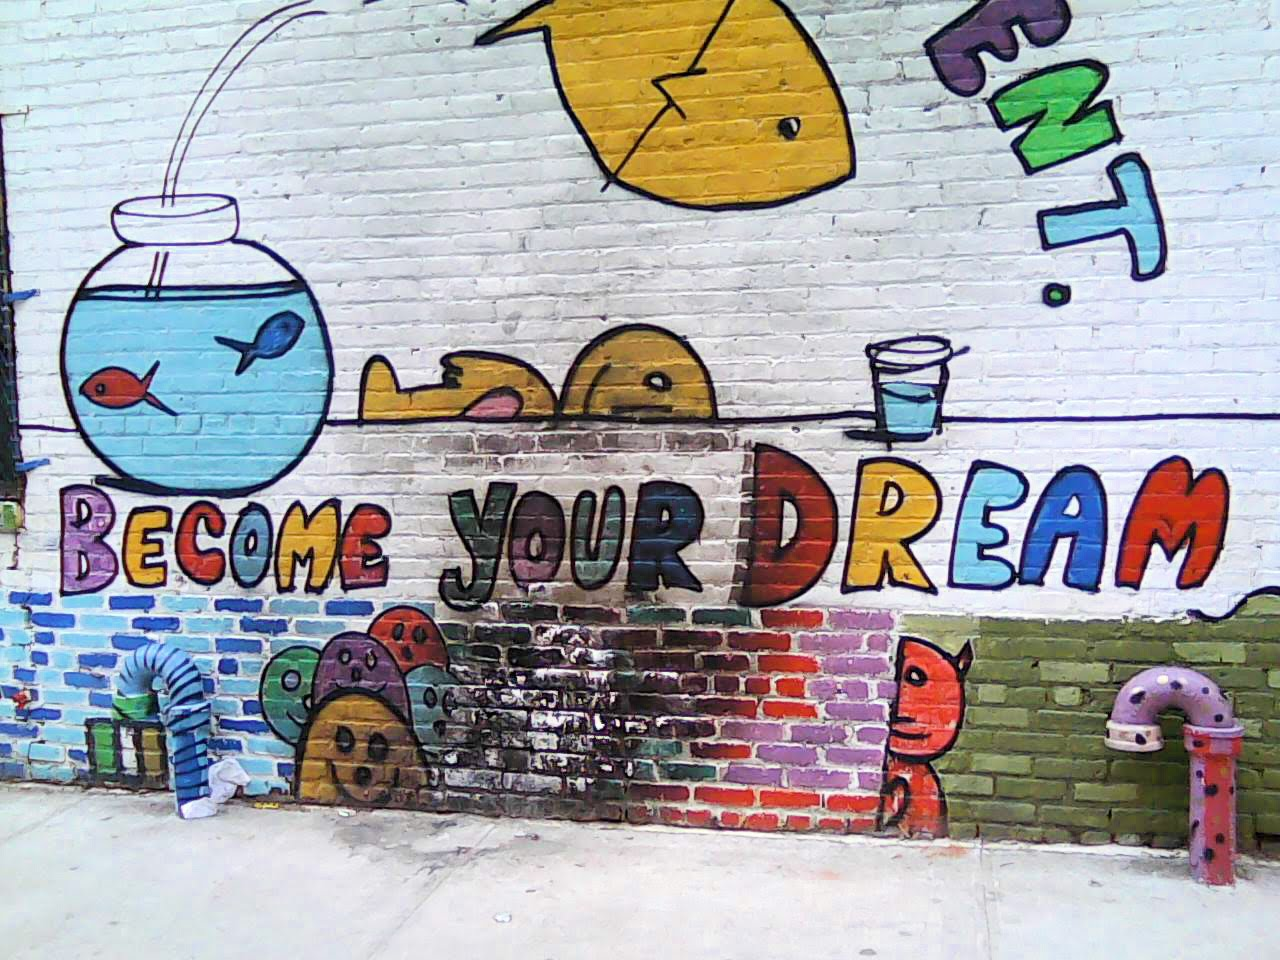 Become Your Dream graphic